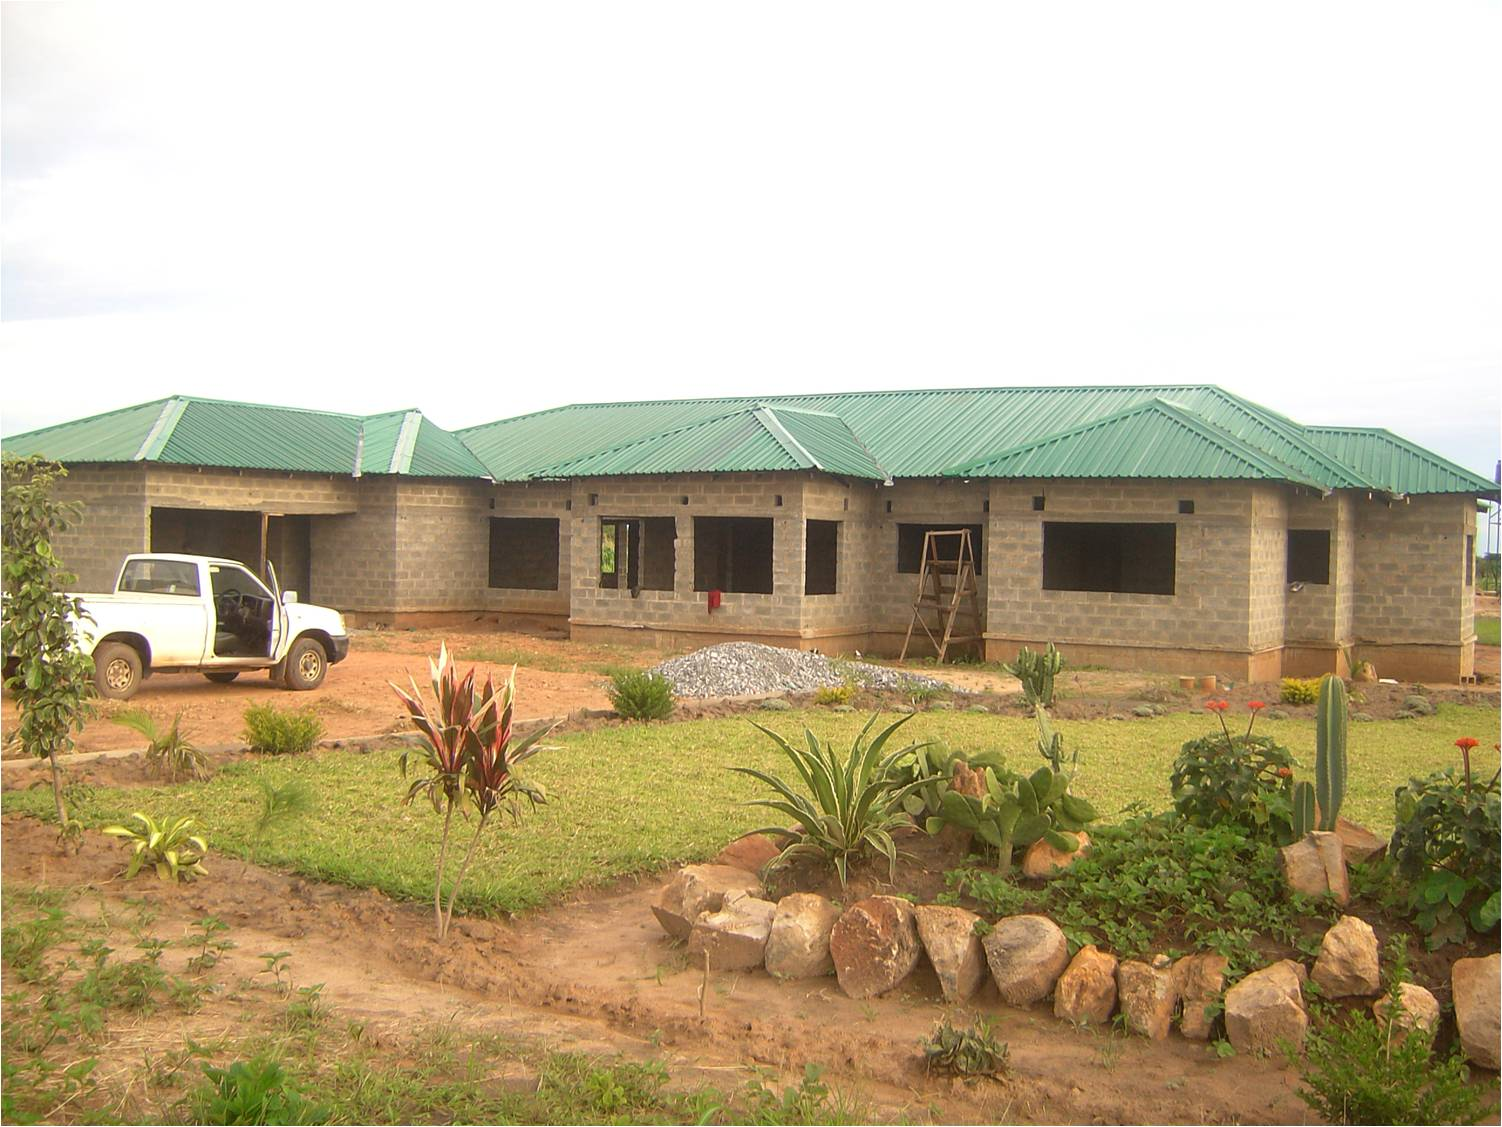 Incomplete House For Sale Ndola Zambia Md2438889